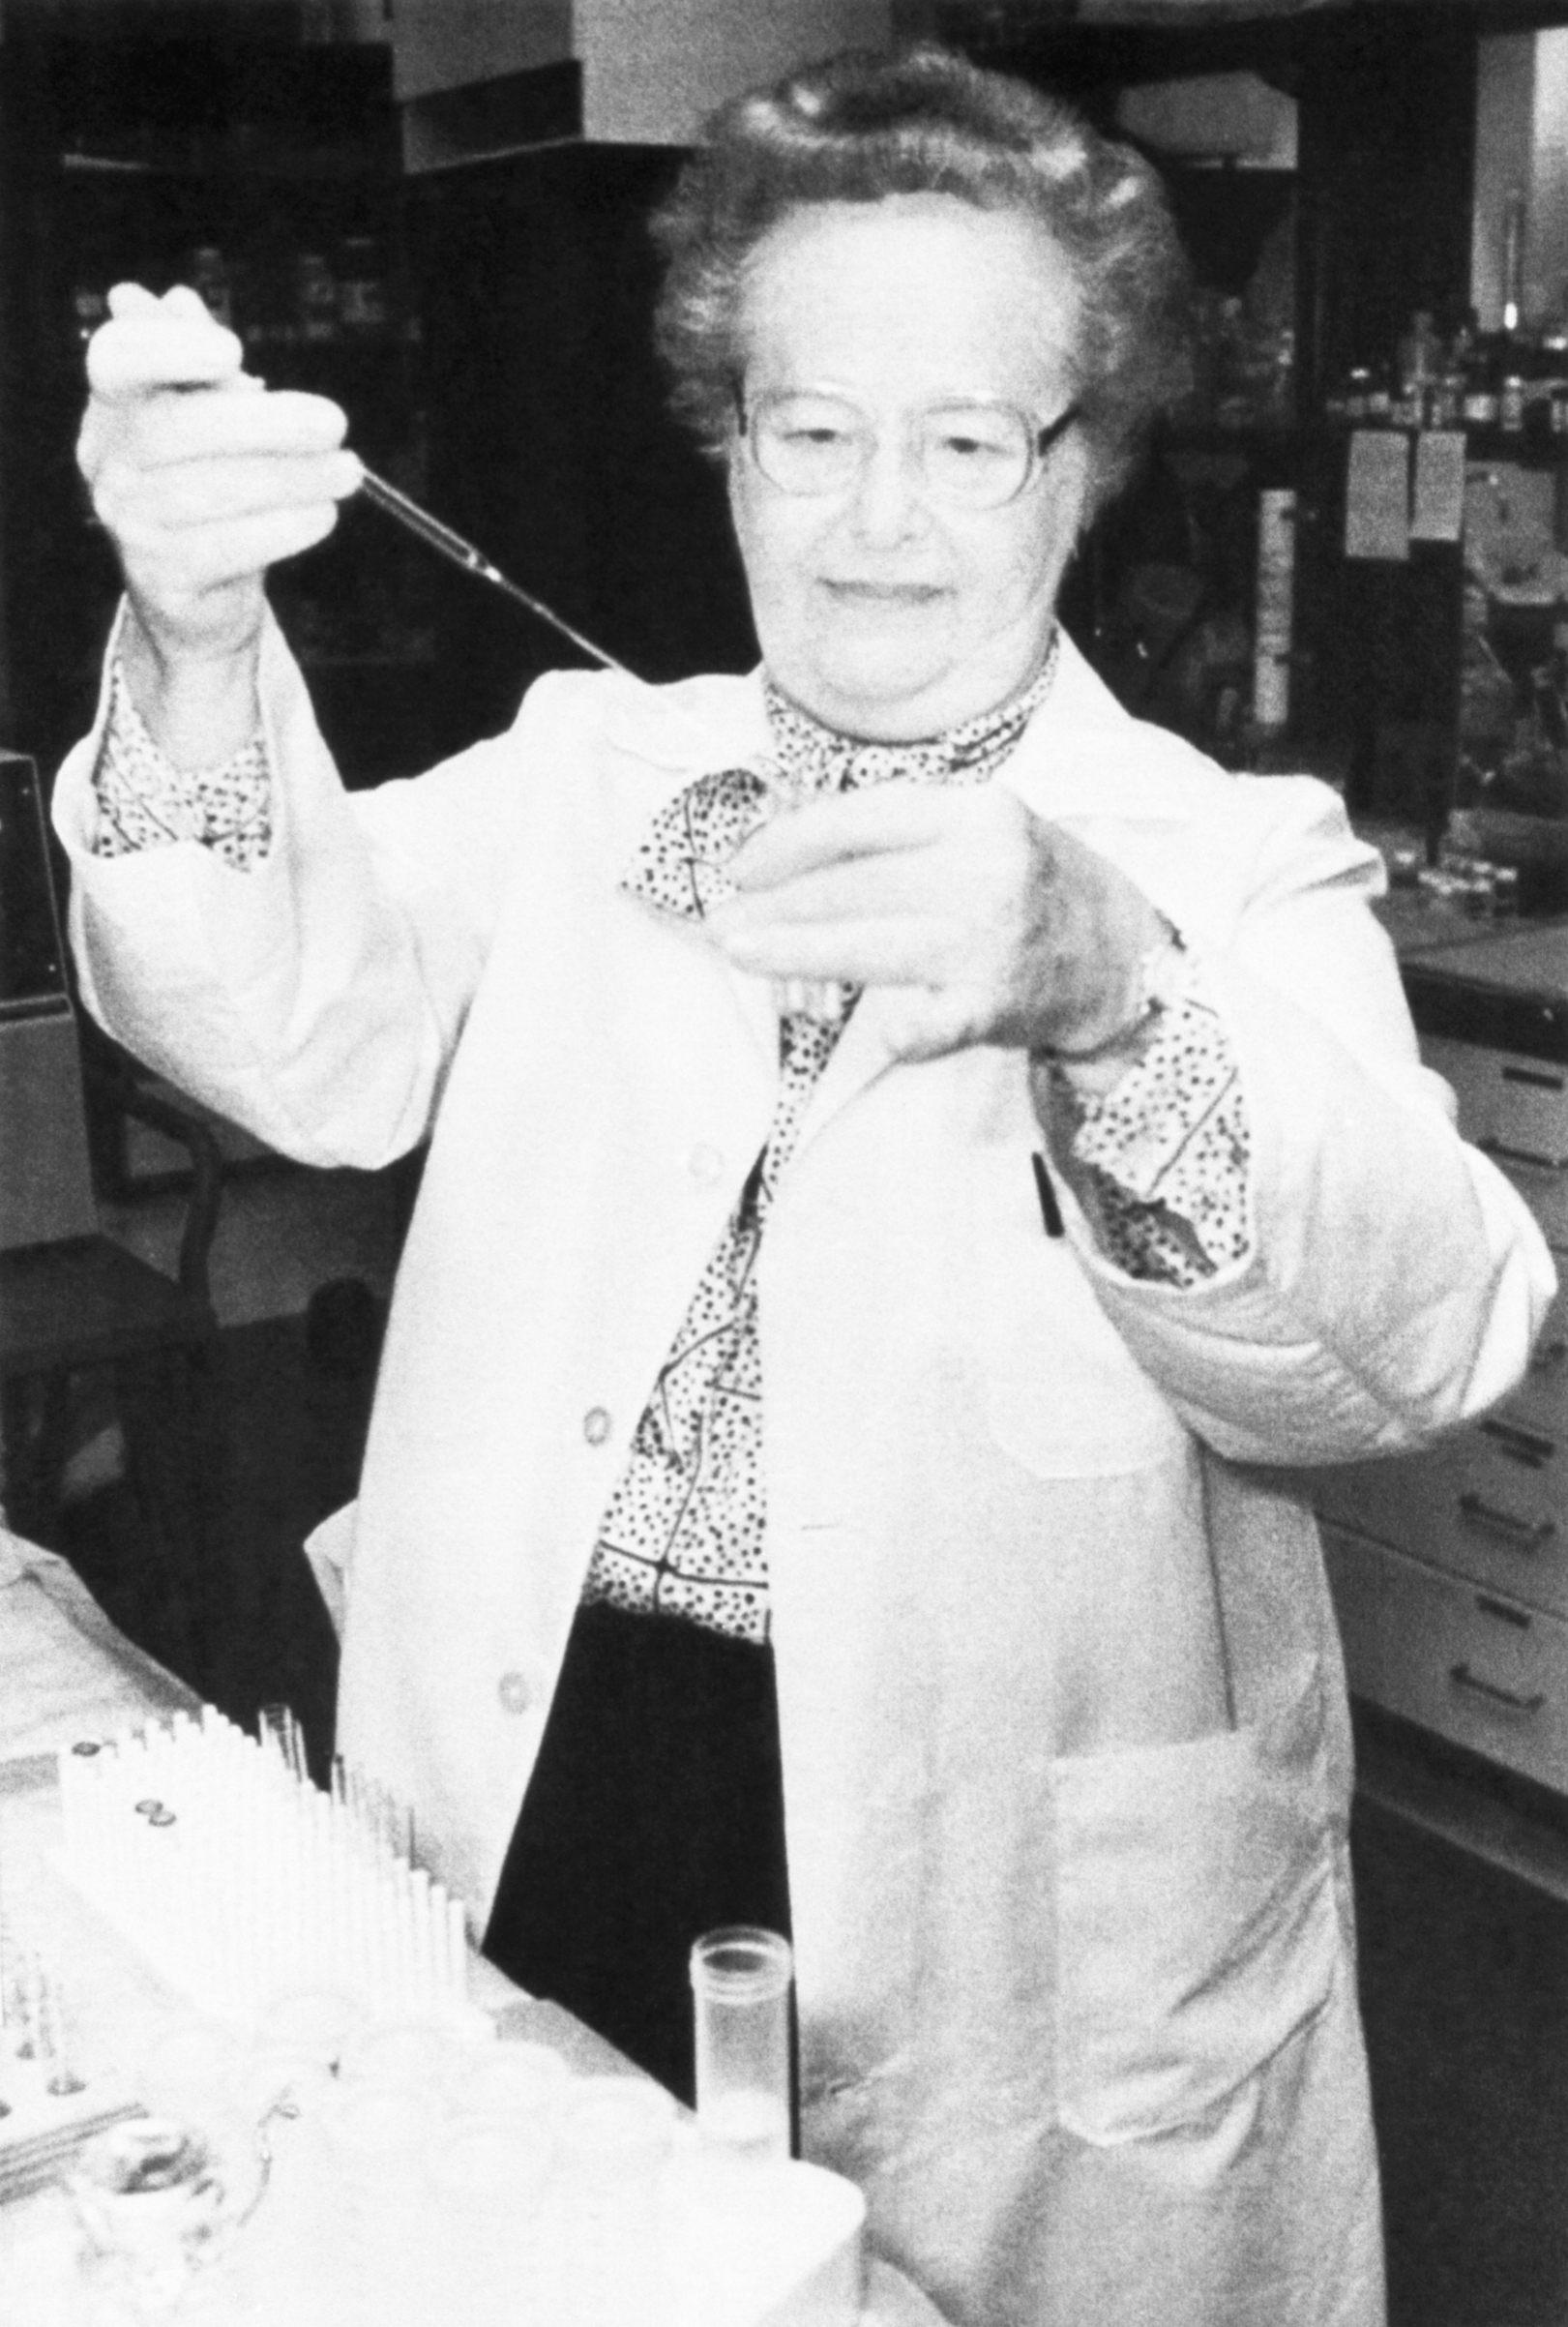 Burroughs Wellcome researcher Gertrude Elion was back at work in the lab after being named a Nobel Prize winner in Medicine in 1988. Elion and coworker George Hitchings were chosen for the honor for their work in developing drugs to treat leukemia and AIDS.